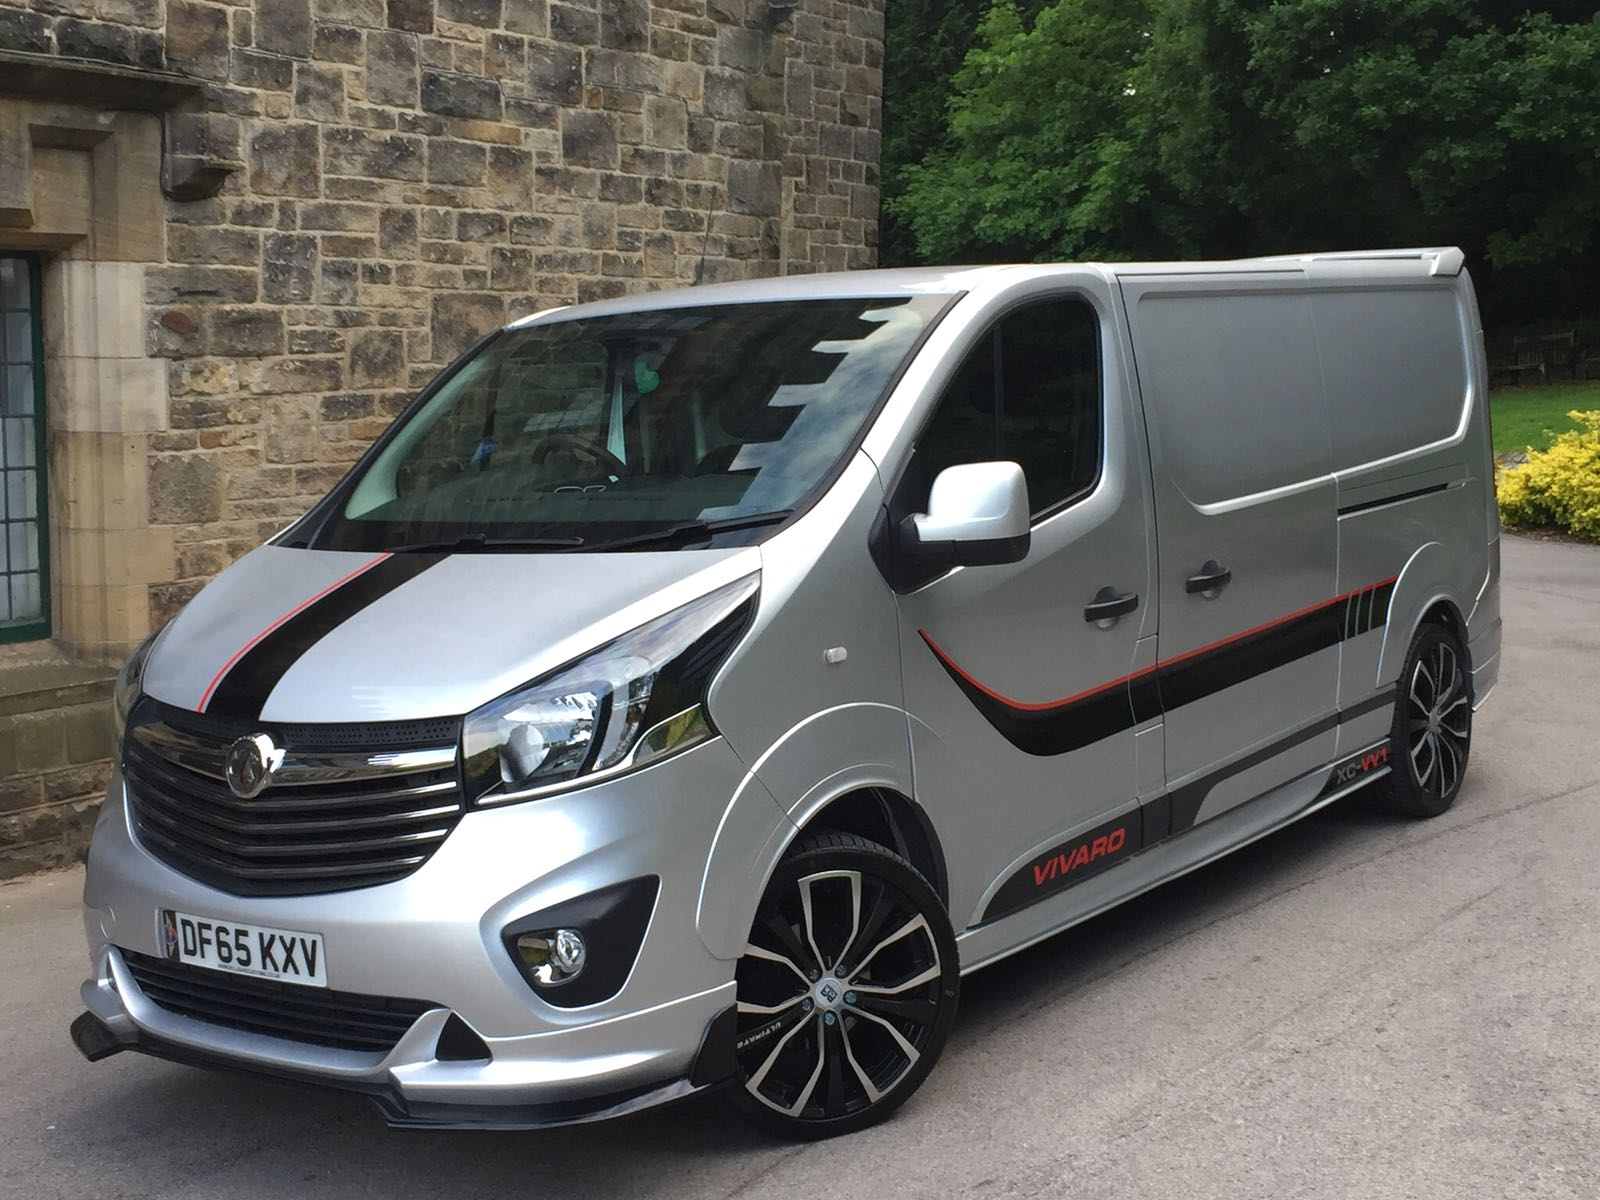 Vauxhall Vivaro Body Kit Xclusive Customz